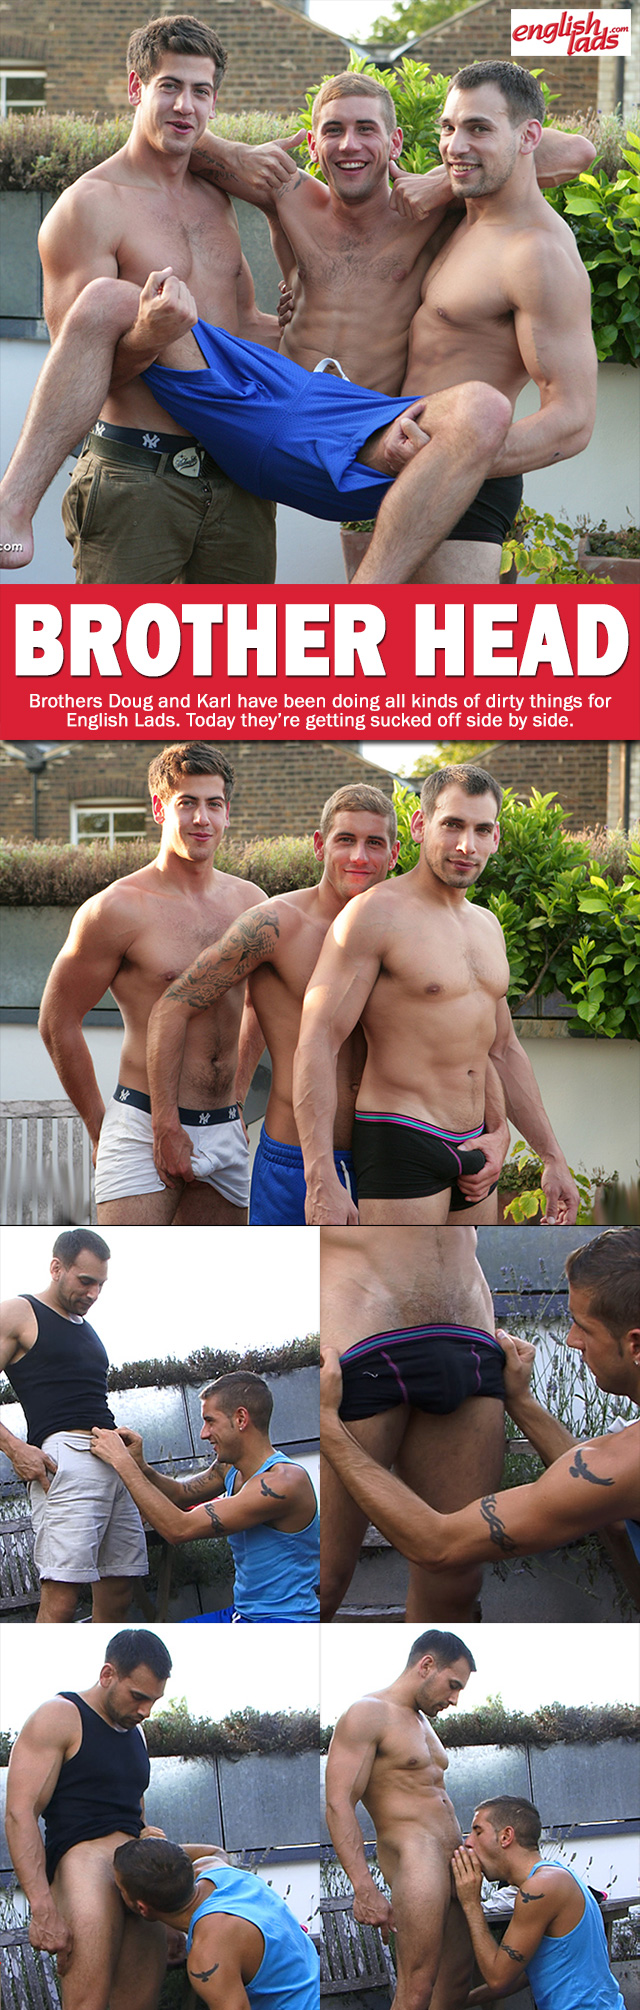 brother and brother gay porn getting brothers mitchell collages blowjobs dan blowing broughton englishlads